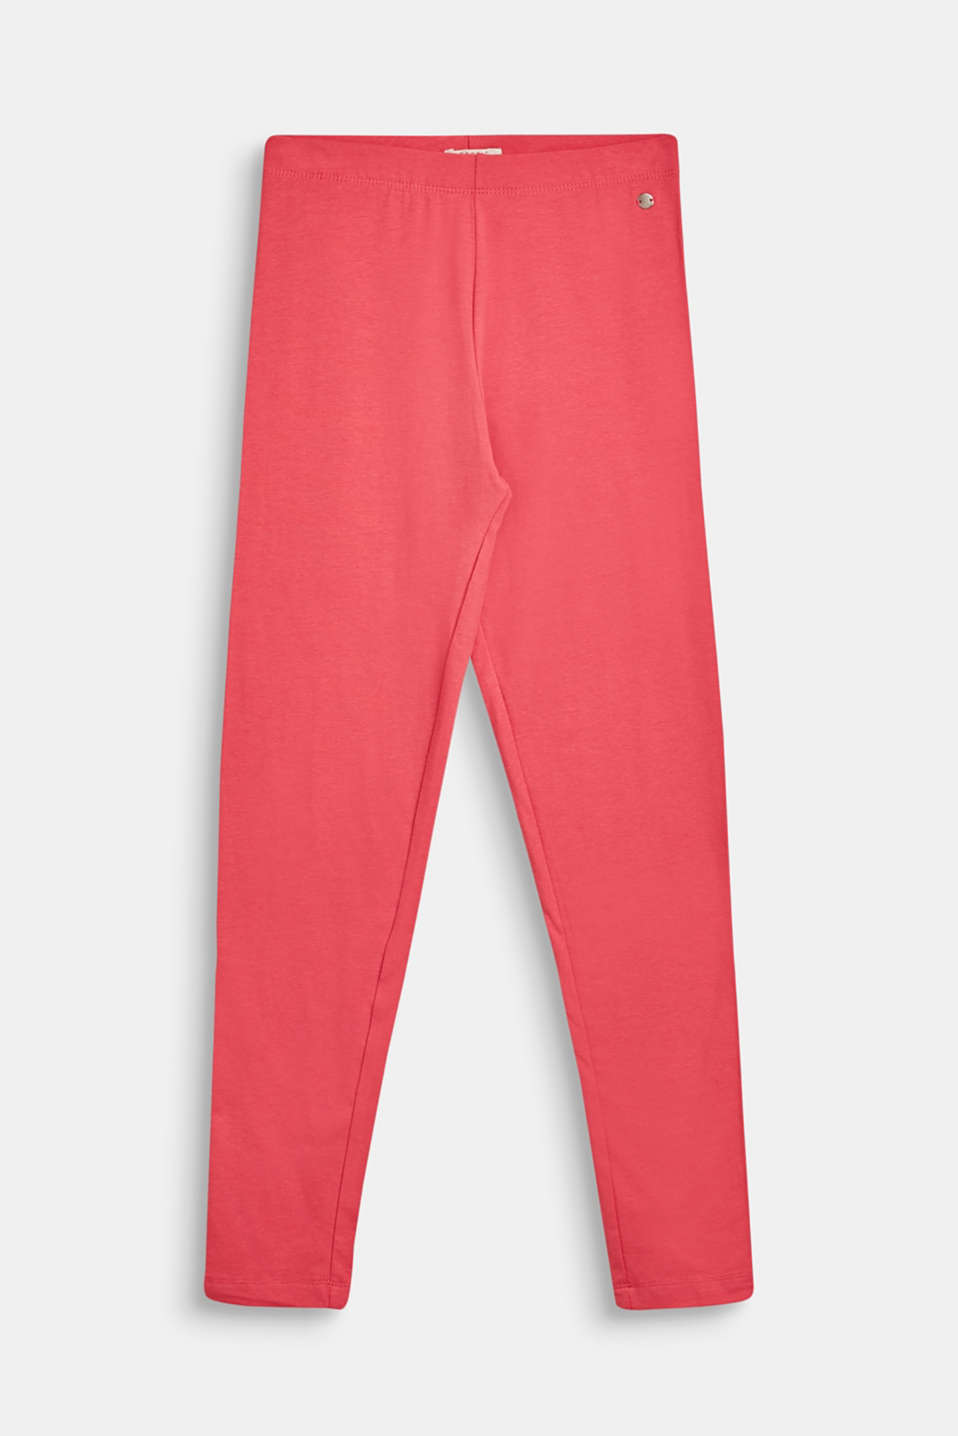 Esprit - Leggings en coton au confort stretch